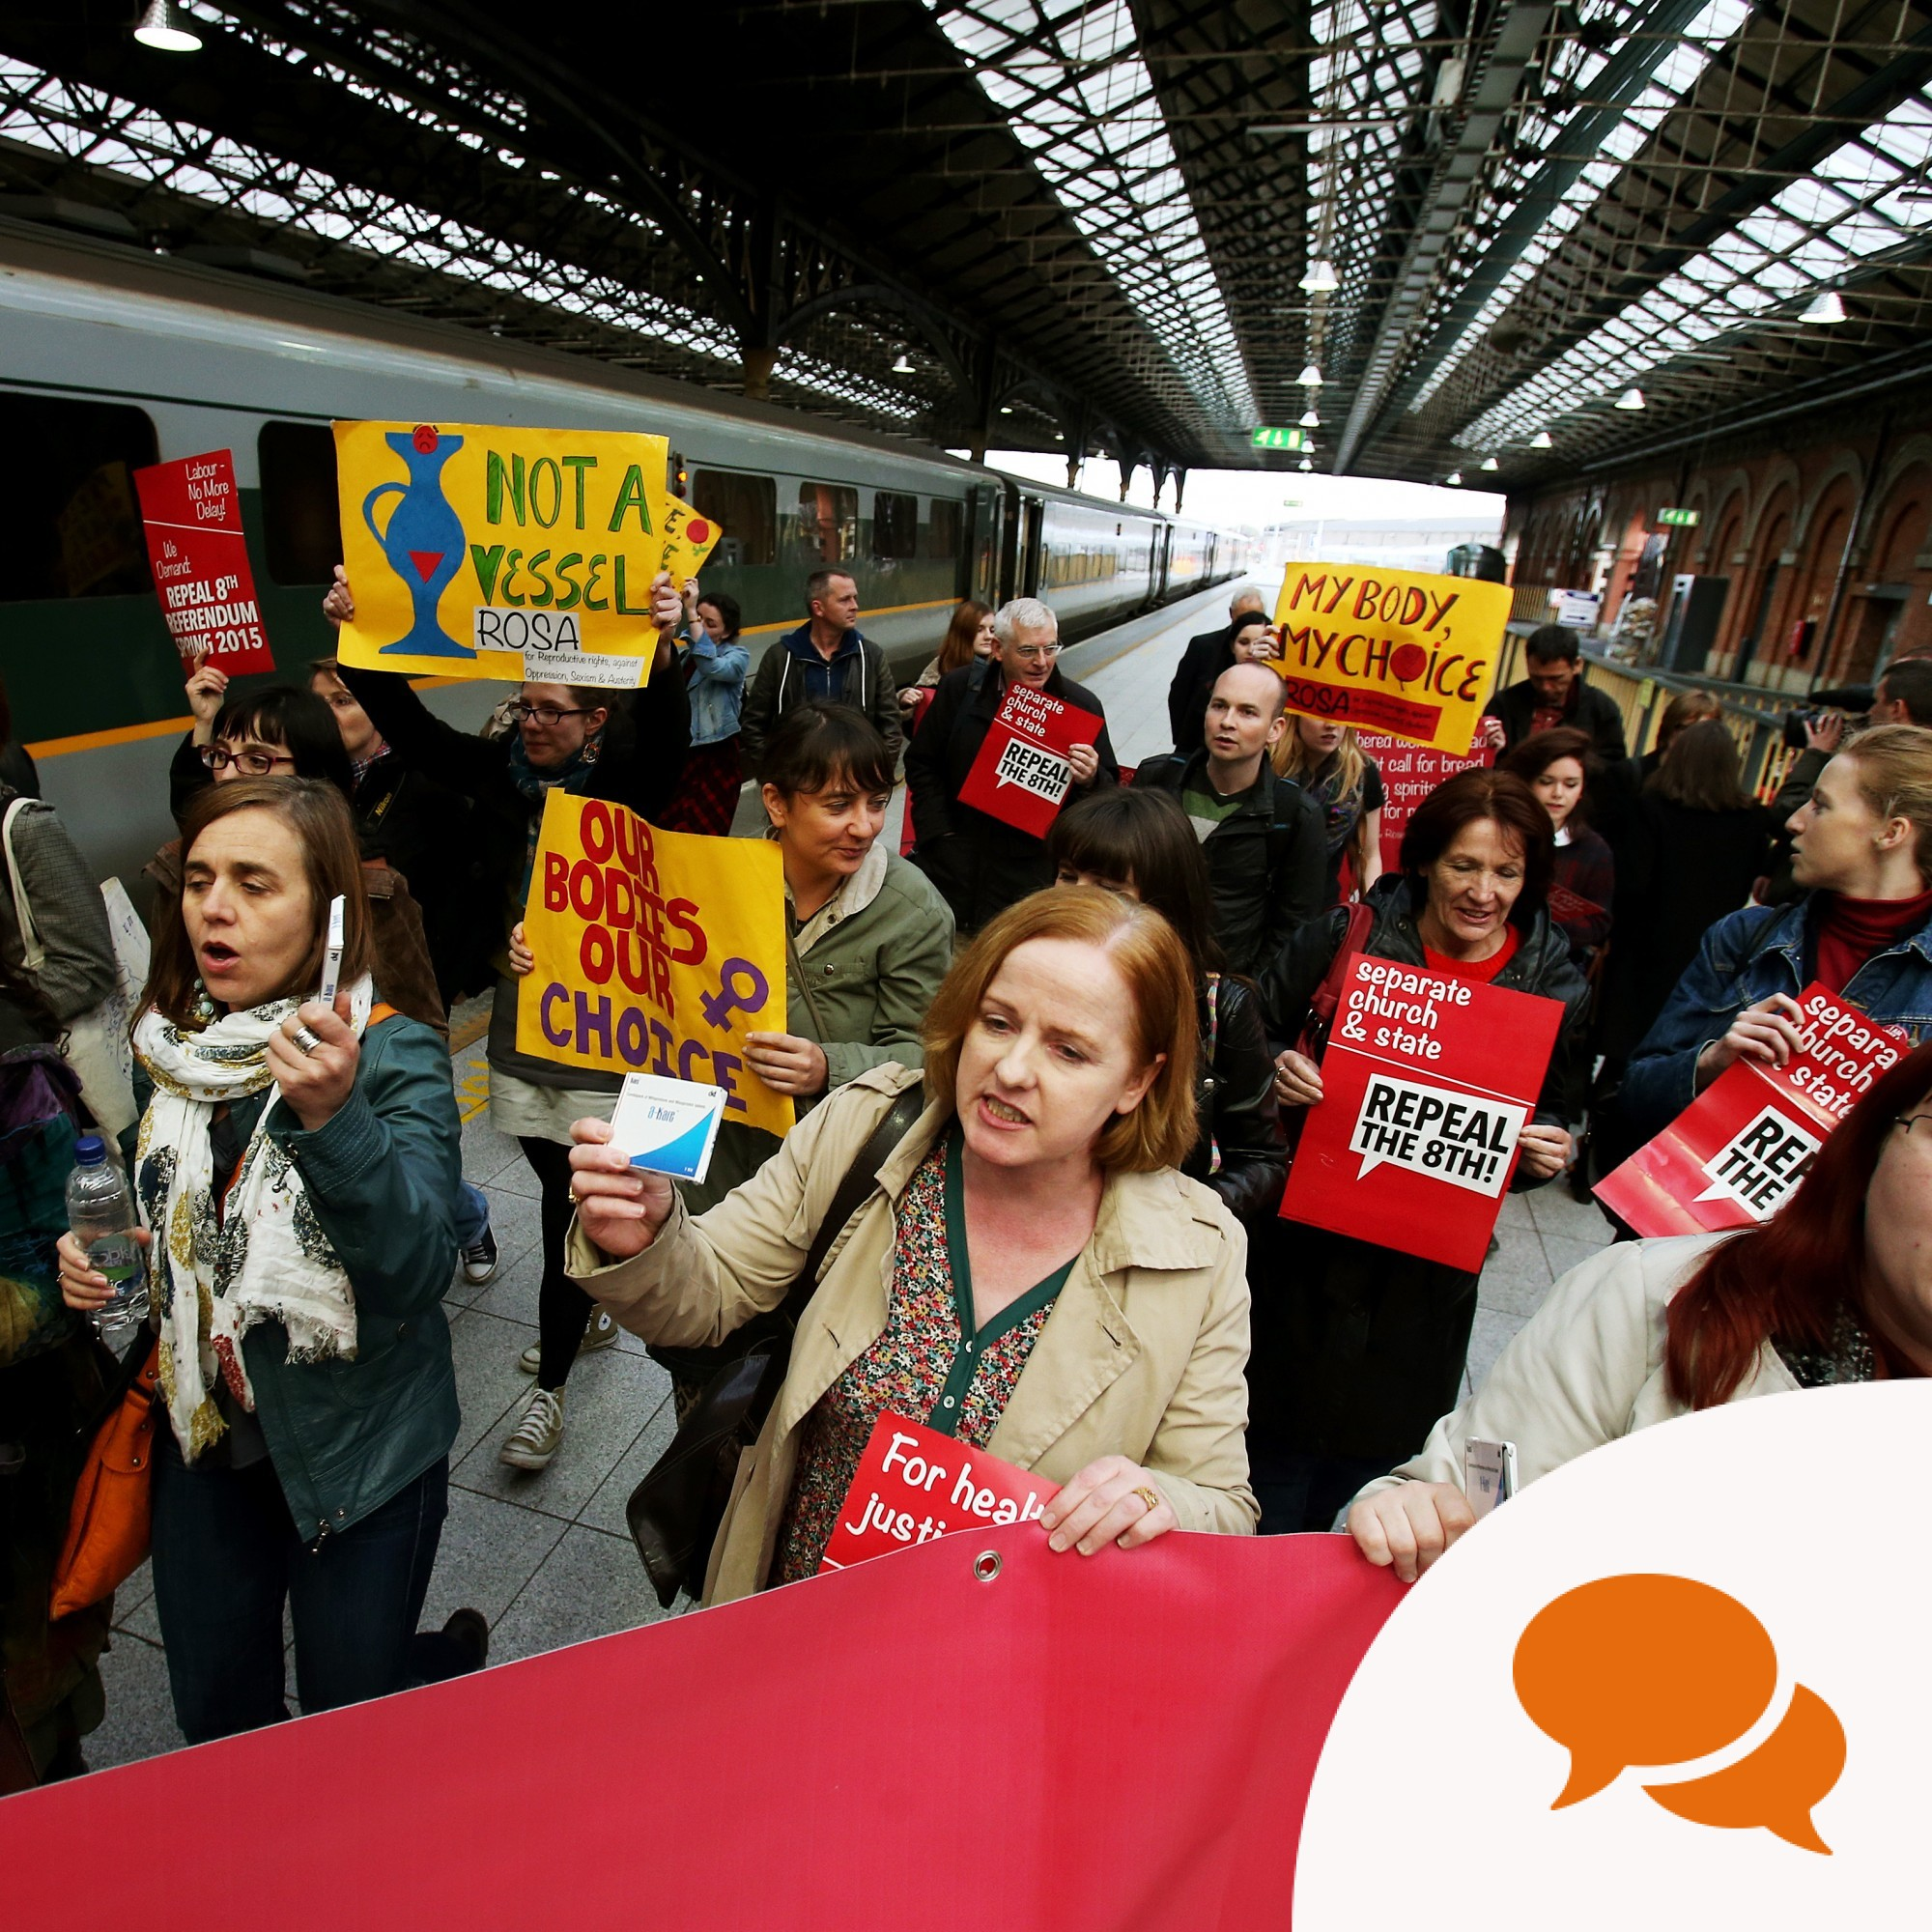 Abortion campaigners need to stop pushing abortion pills as an option for women